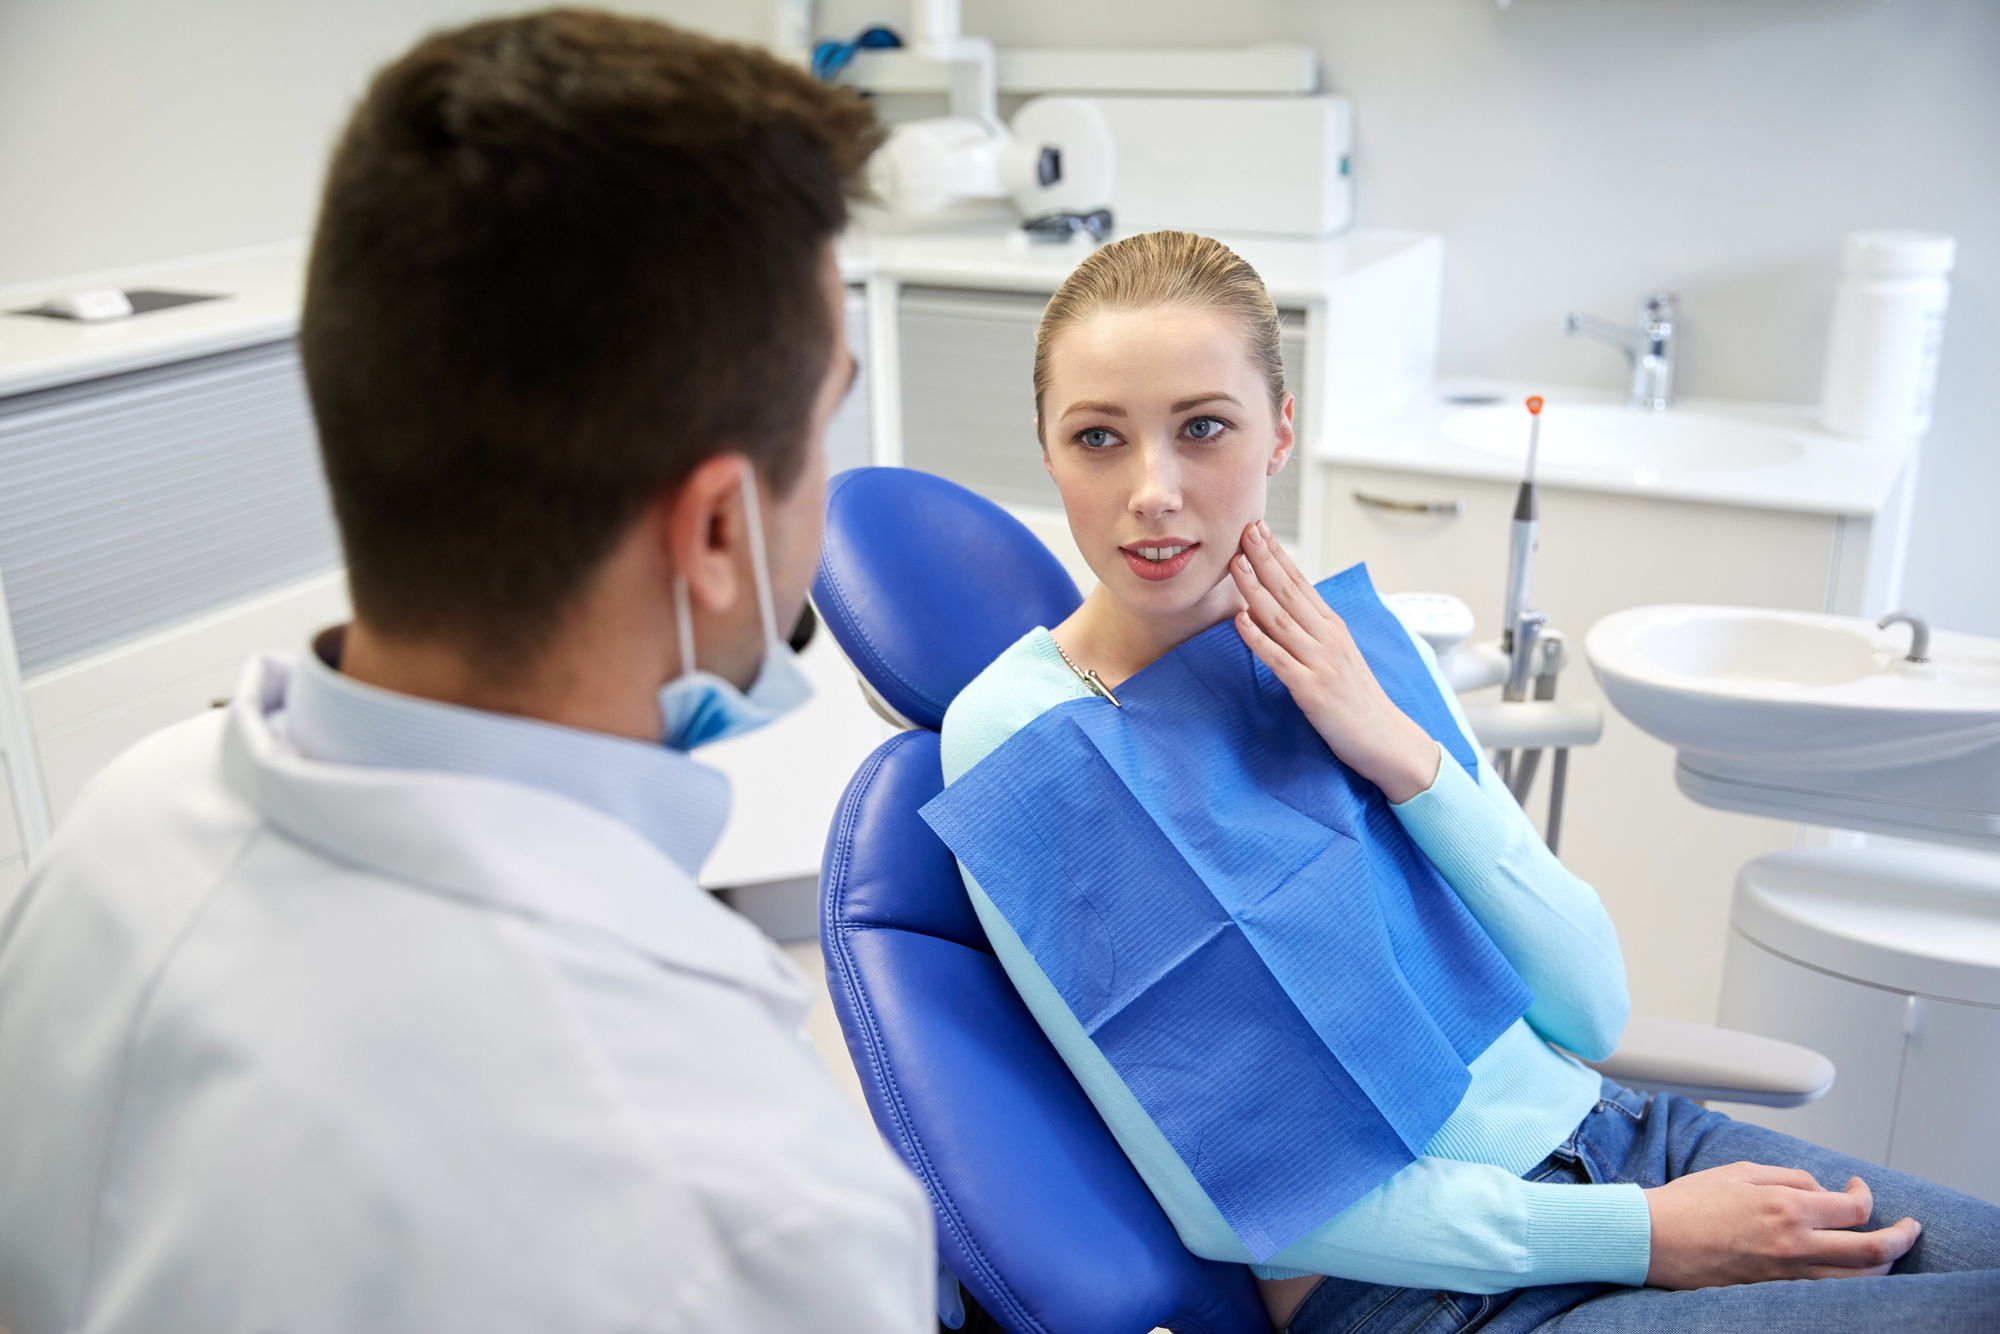 where is a good west miami dentist?